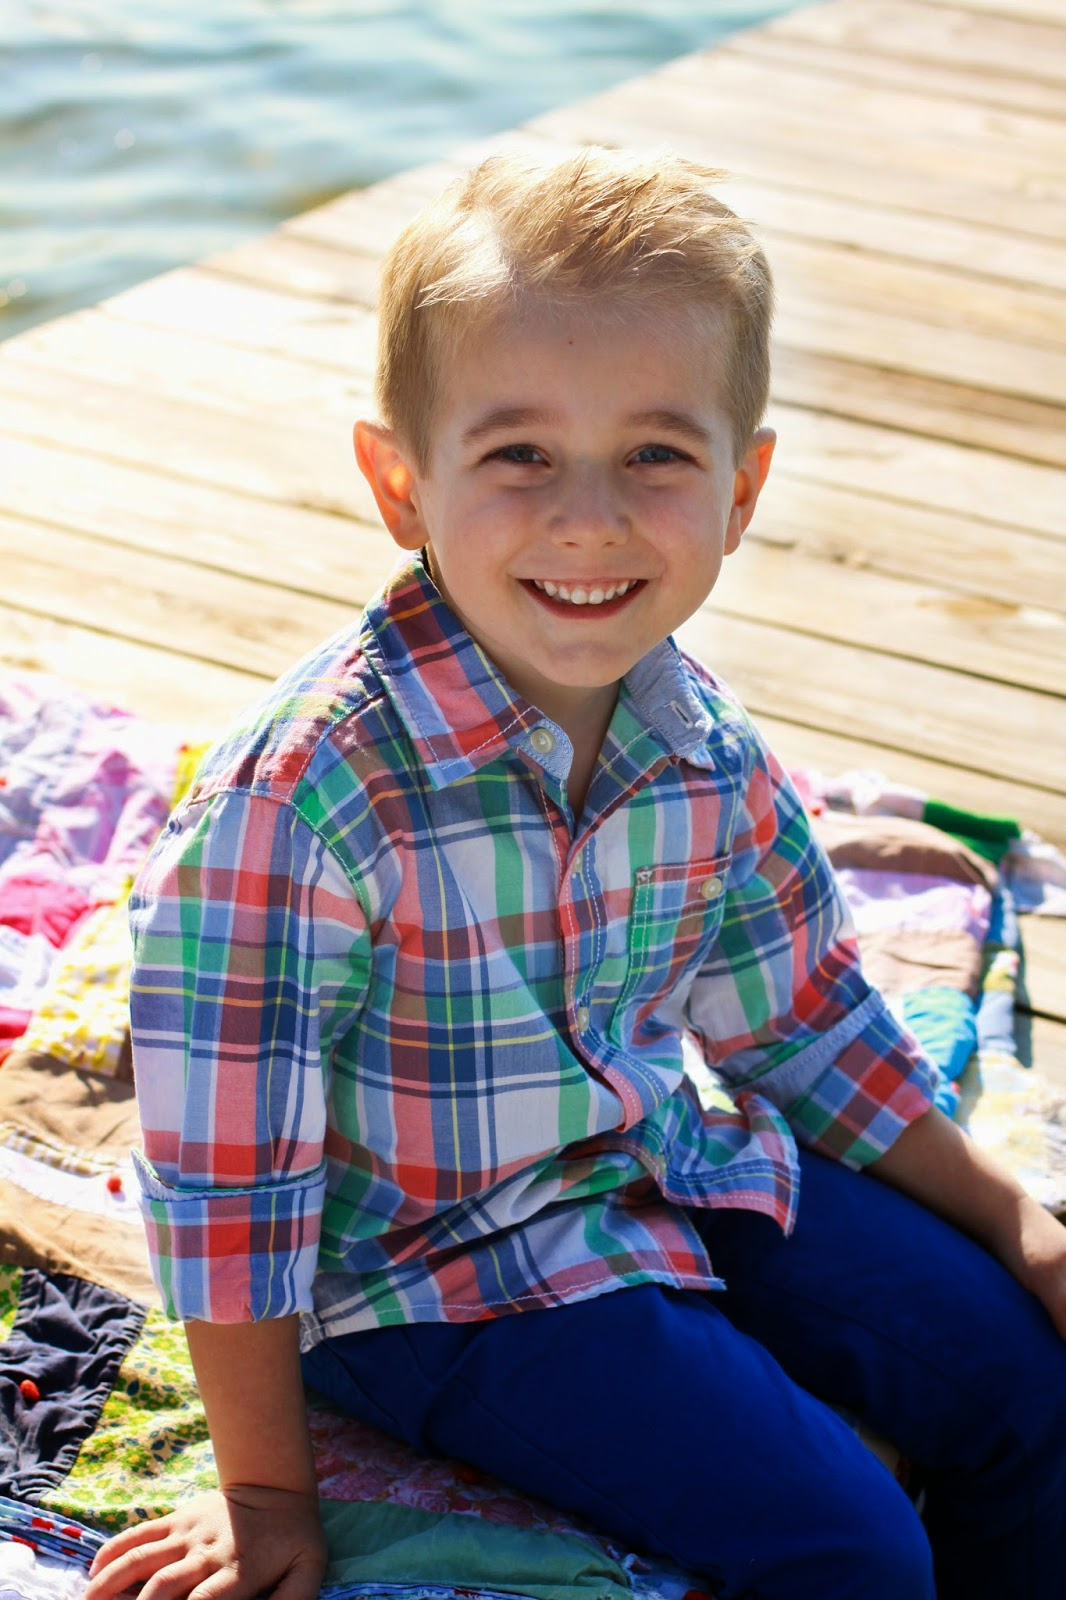 The Journey of Parenthood: Kyes 5 Year Old Photos